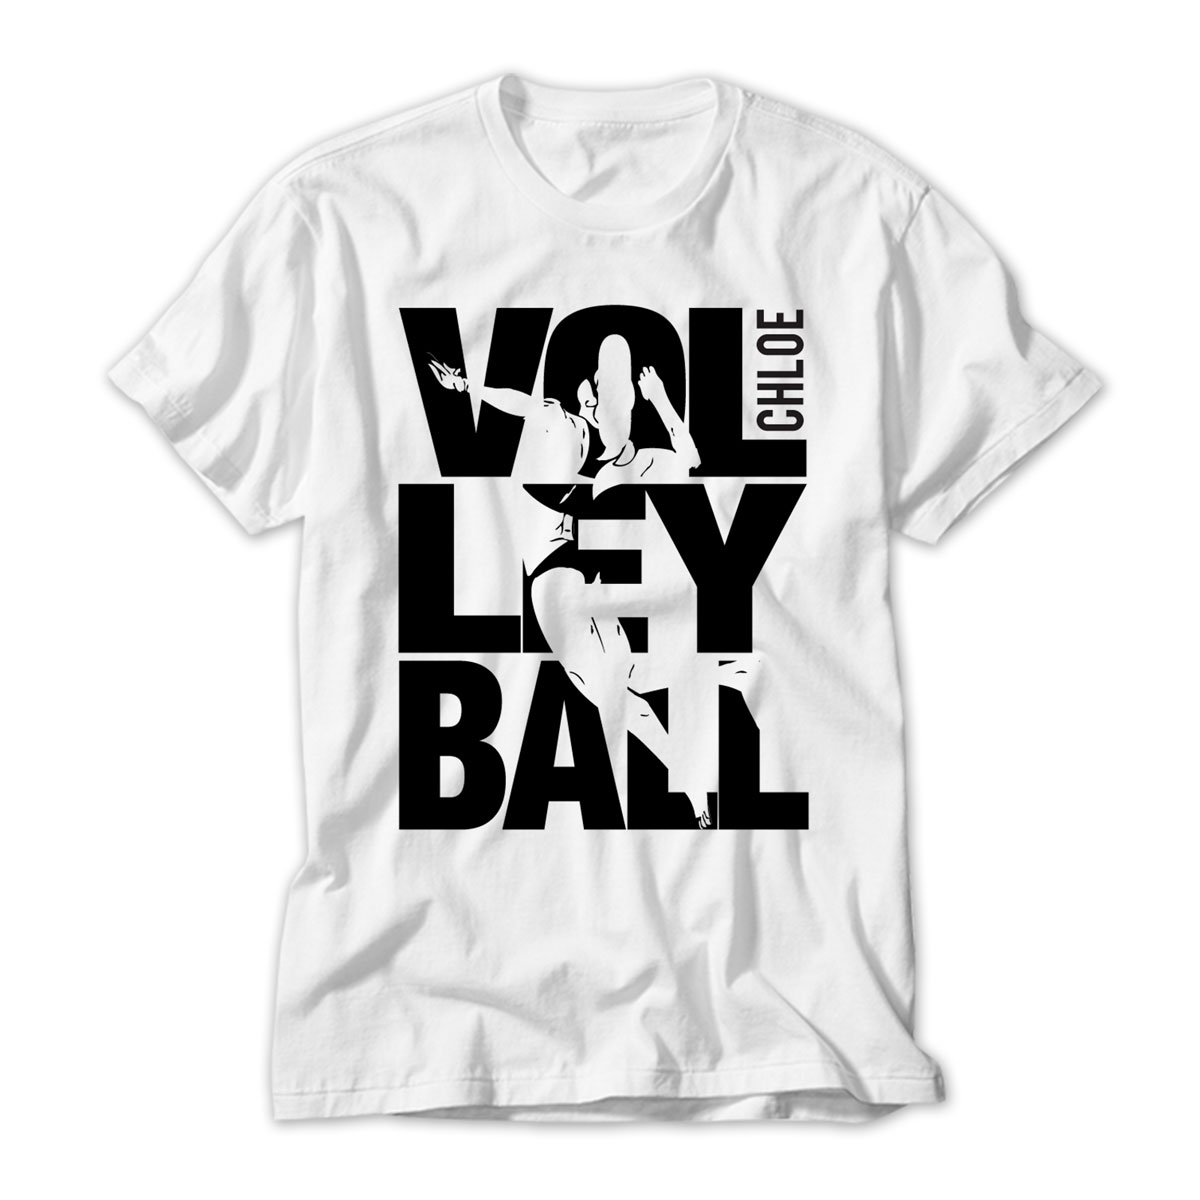 T Shirts Design Concept: Volleyball Shirt Designs